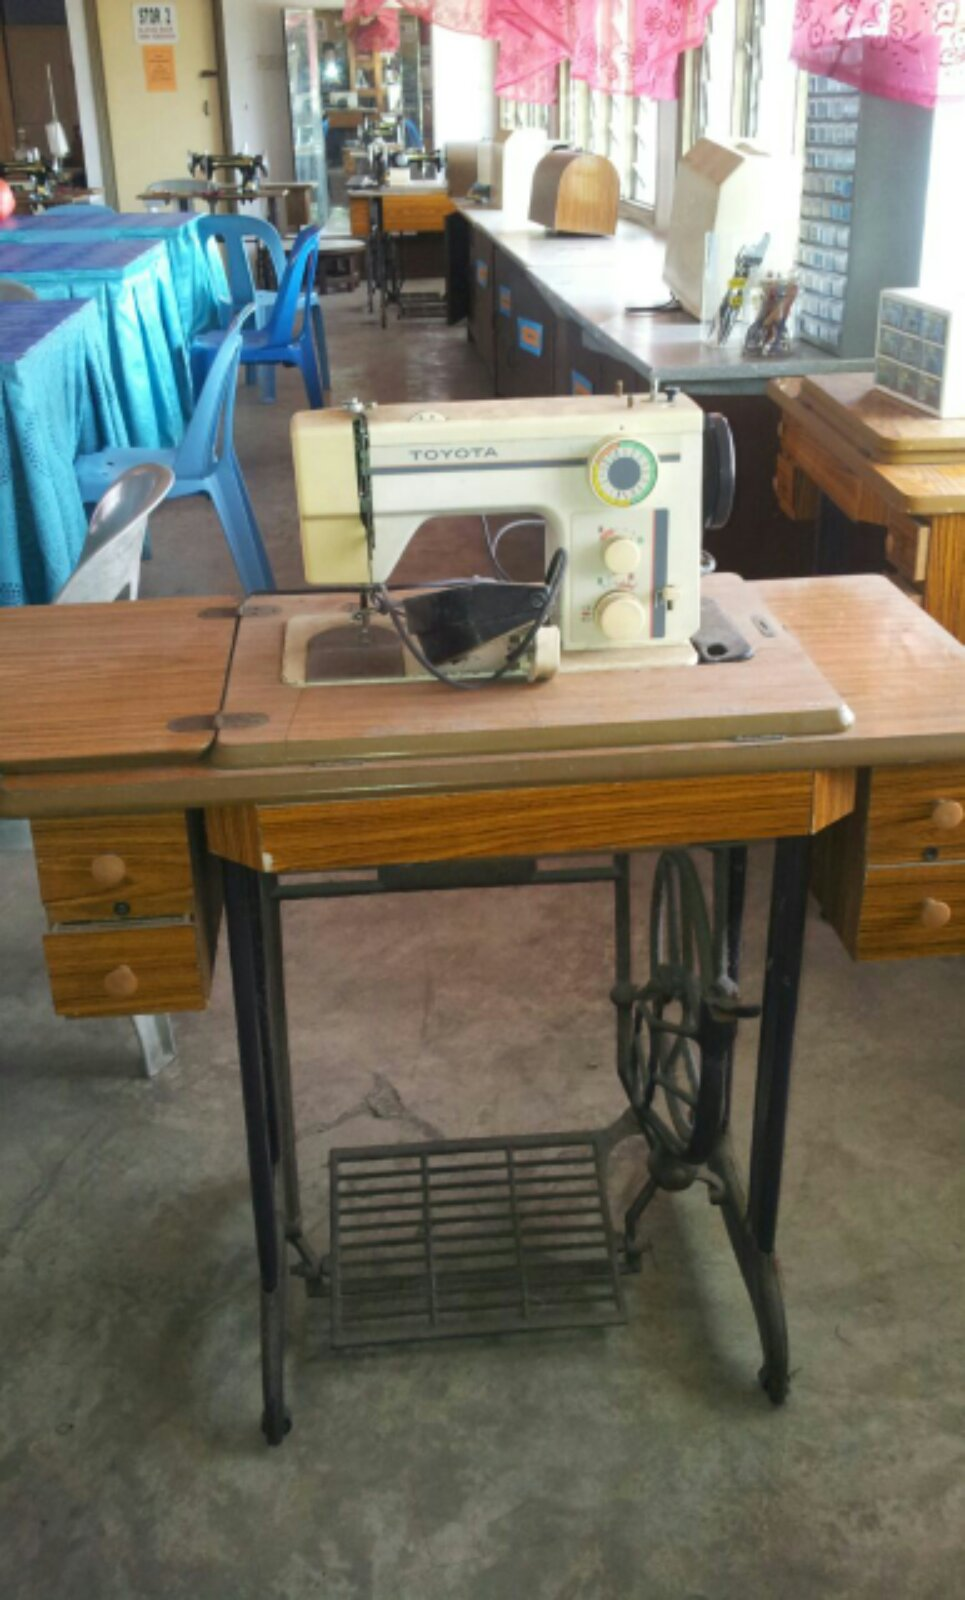 Second Sewing Machine@@